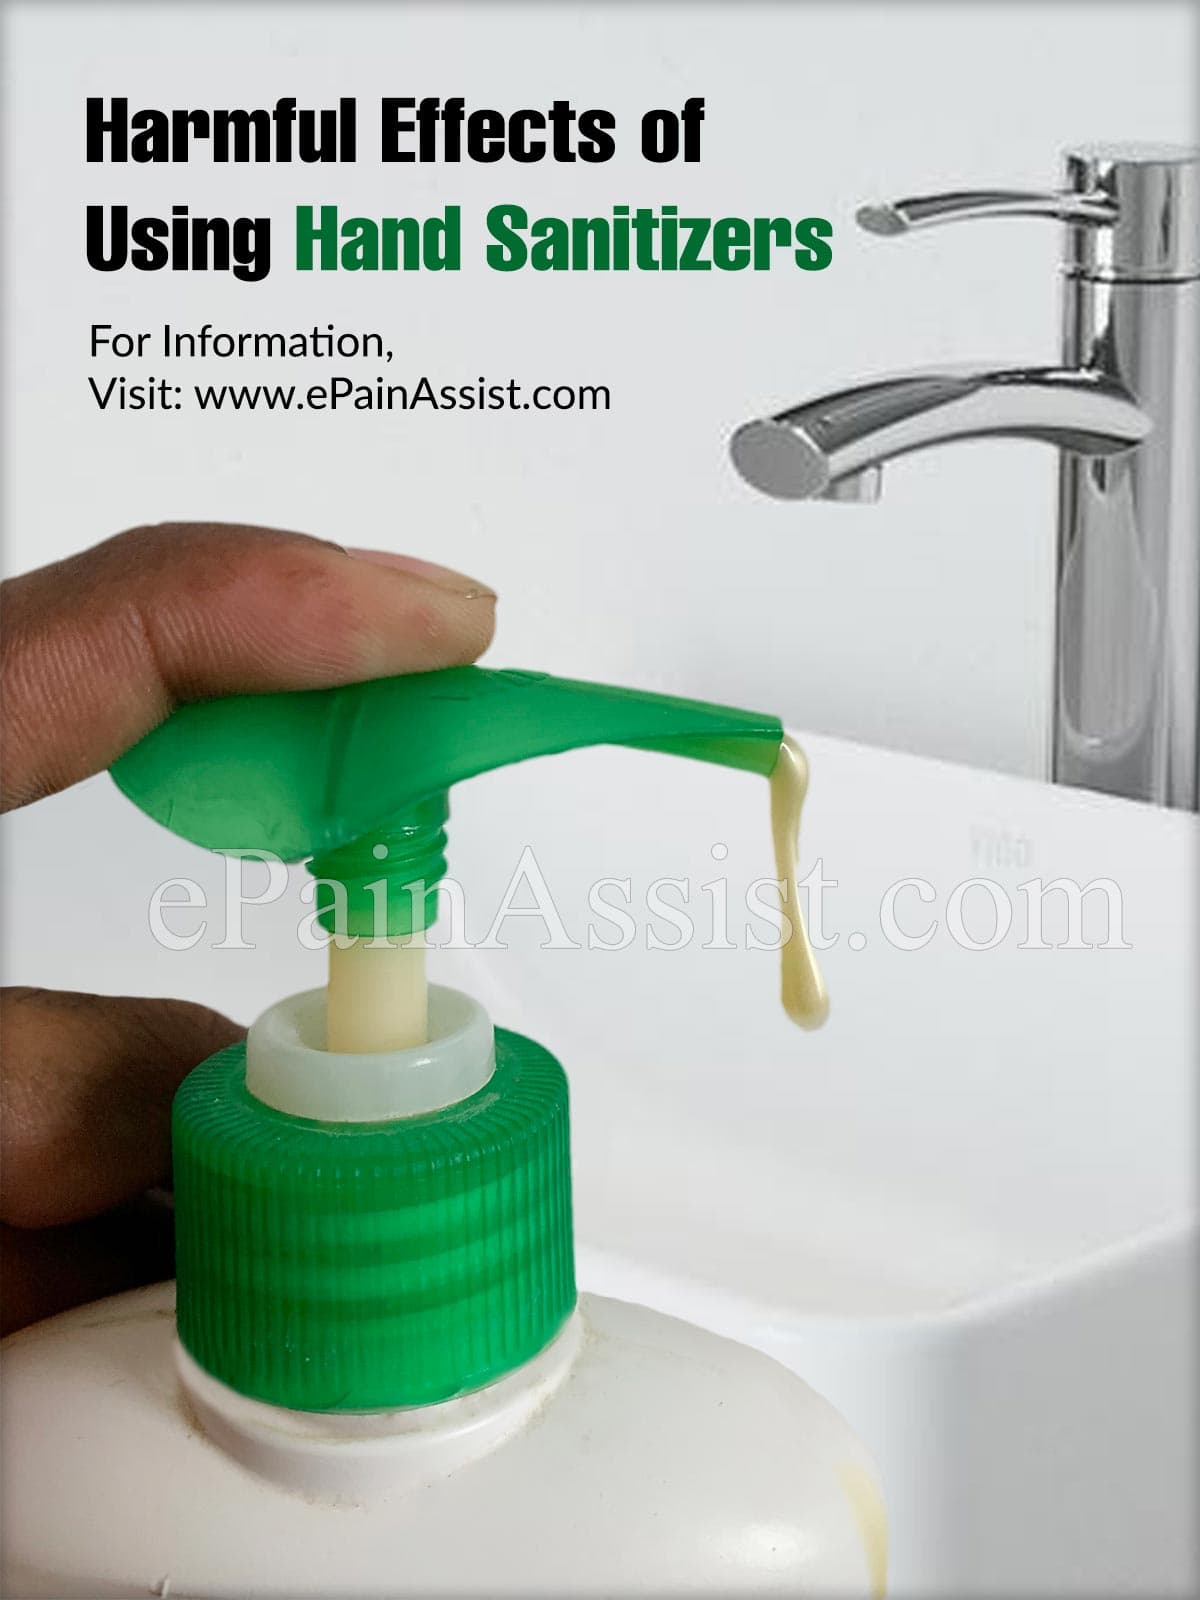 Harmful Effects of Using Hand Sanitizers